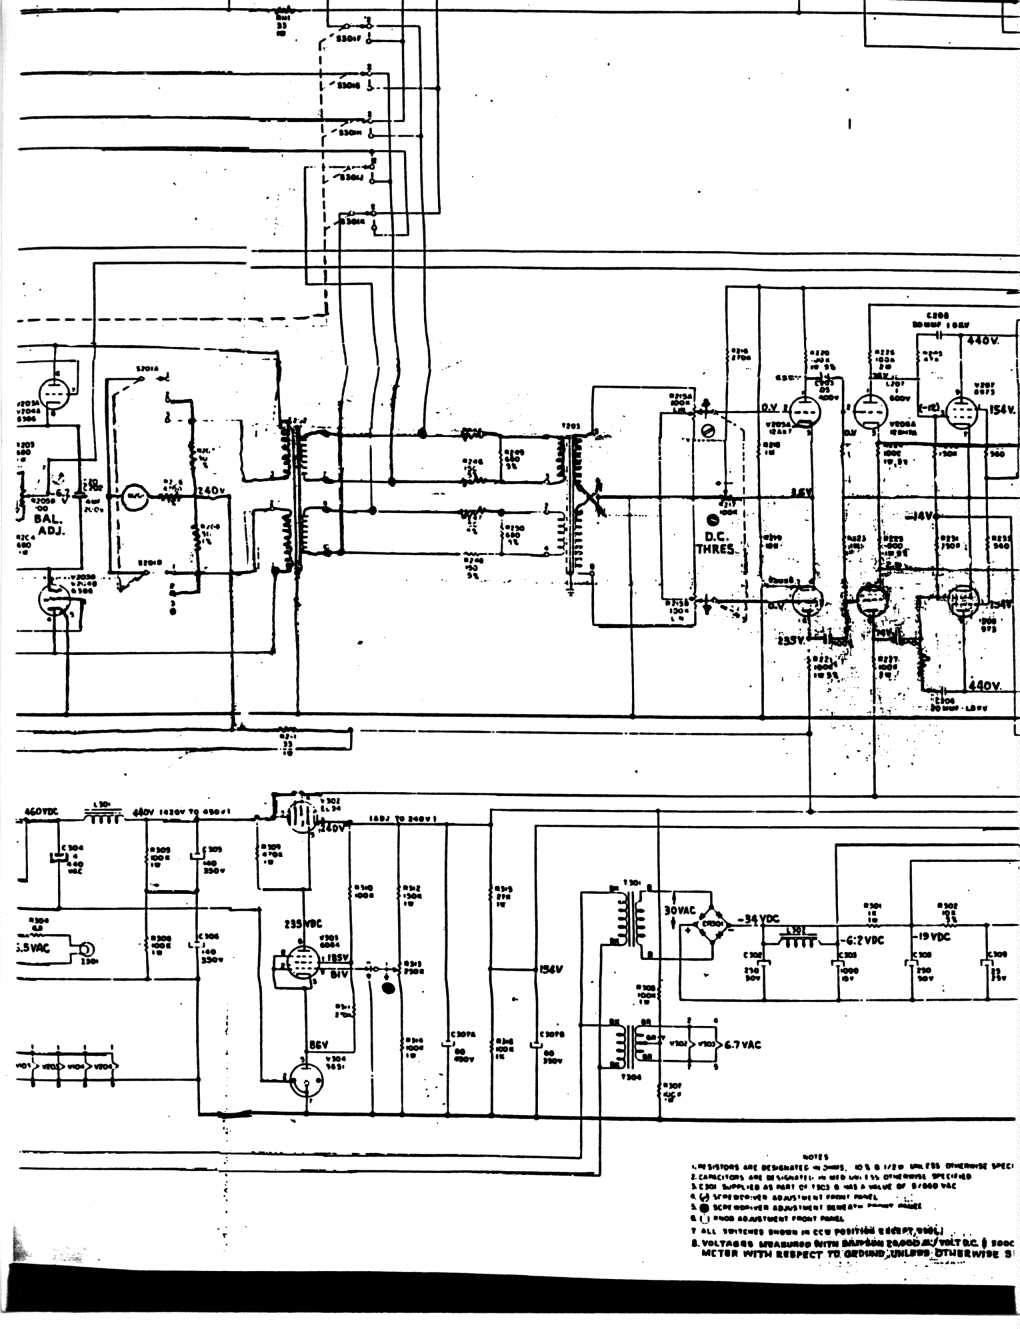 Pro Audio Equipment Playstation 3 Block Diagram Ipc Simplex Am 1026 Amplifier Schematic Very Blurry Irt Kompressor Verstarker Jbl Speakers Drivers And Electronics Datasheets In Pdf